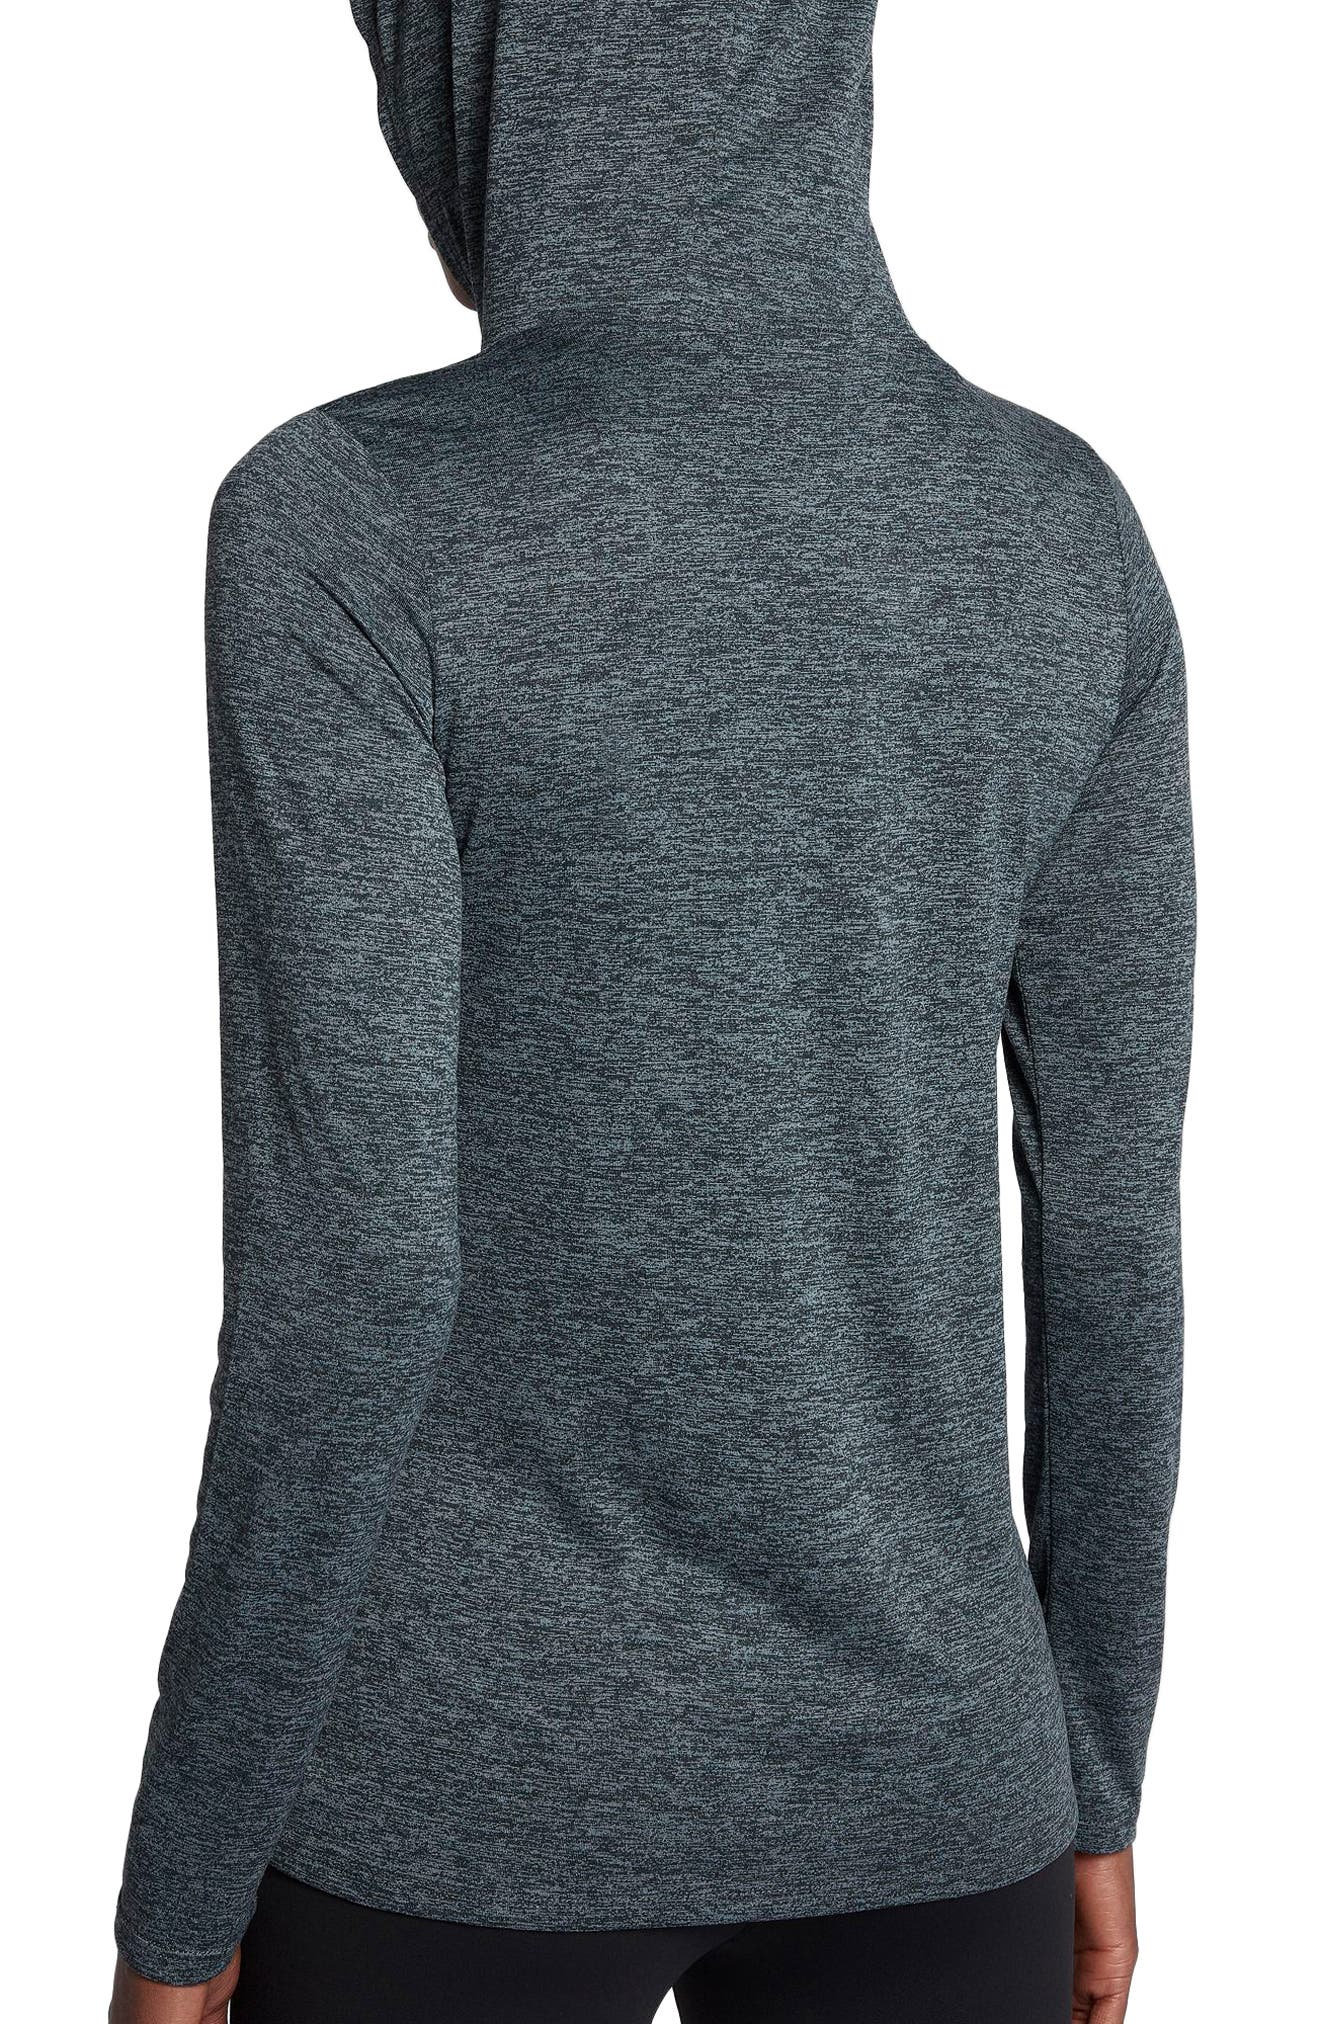 Dry Legend Hooded Training Top,                             Alternate thumbnail 3, color,                             010